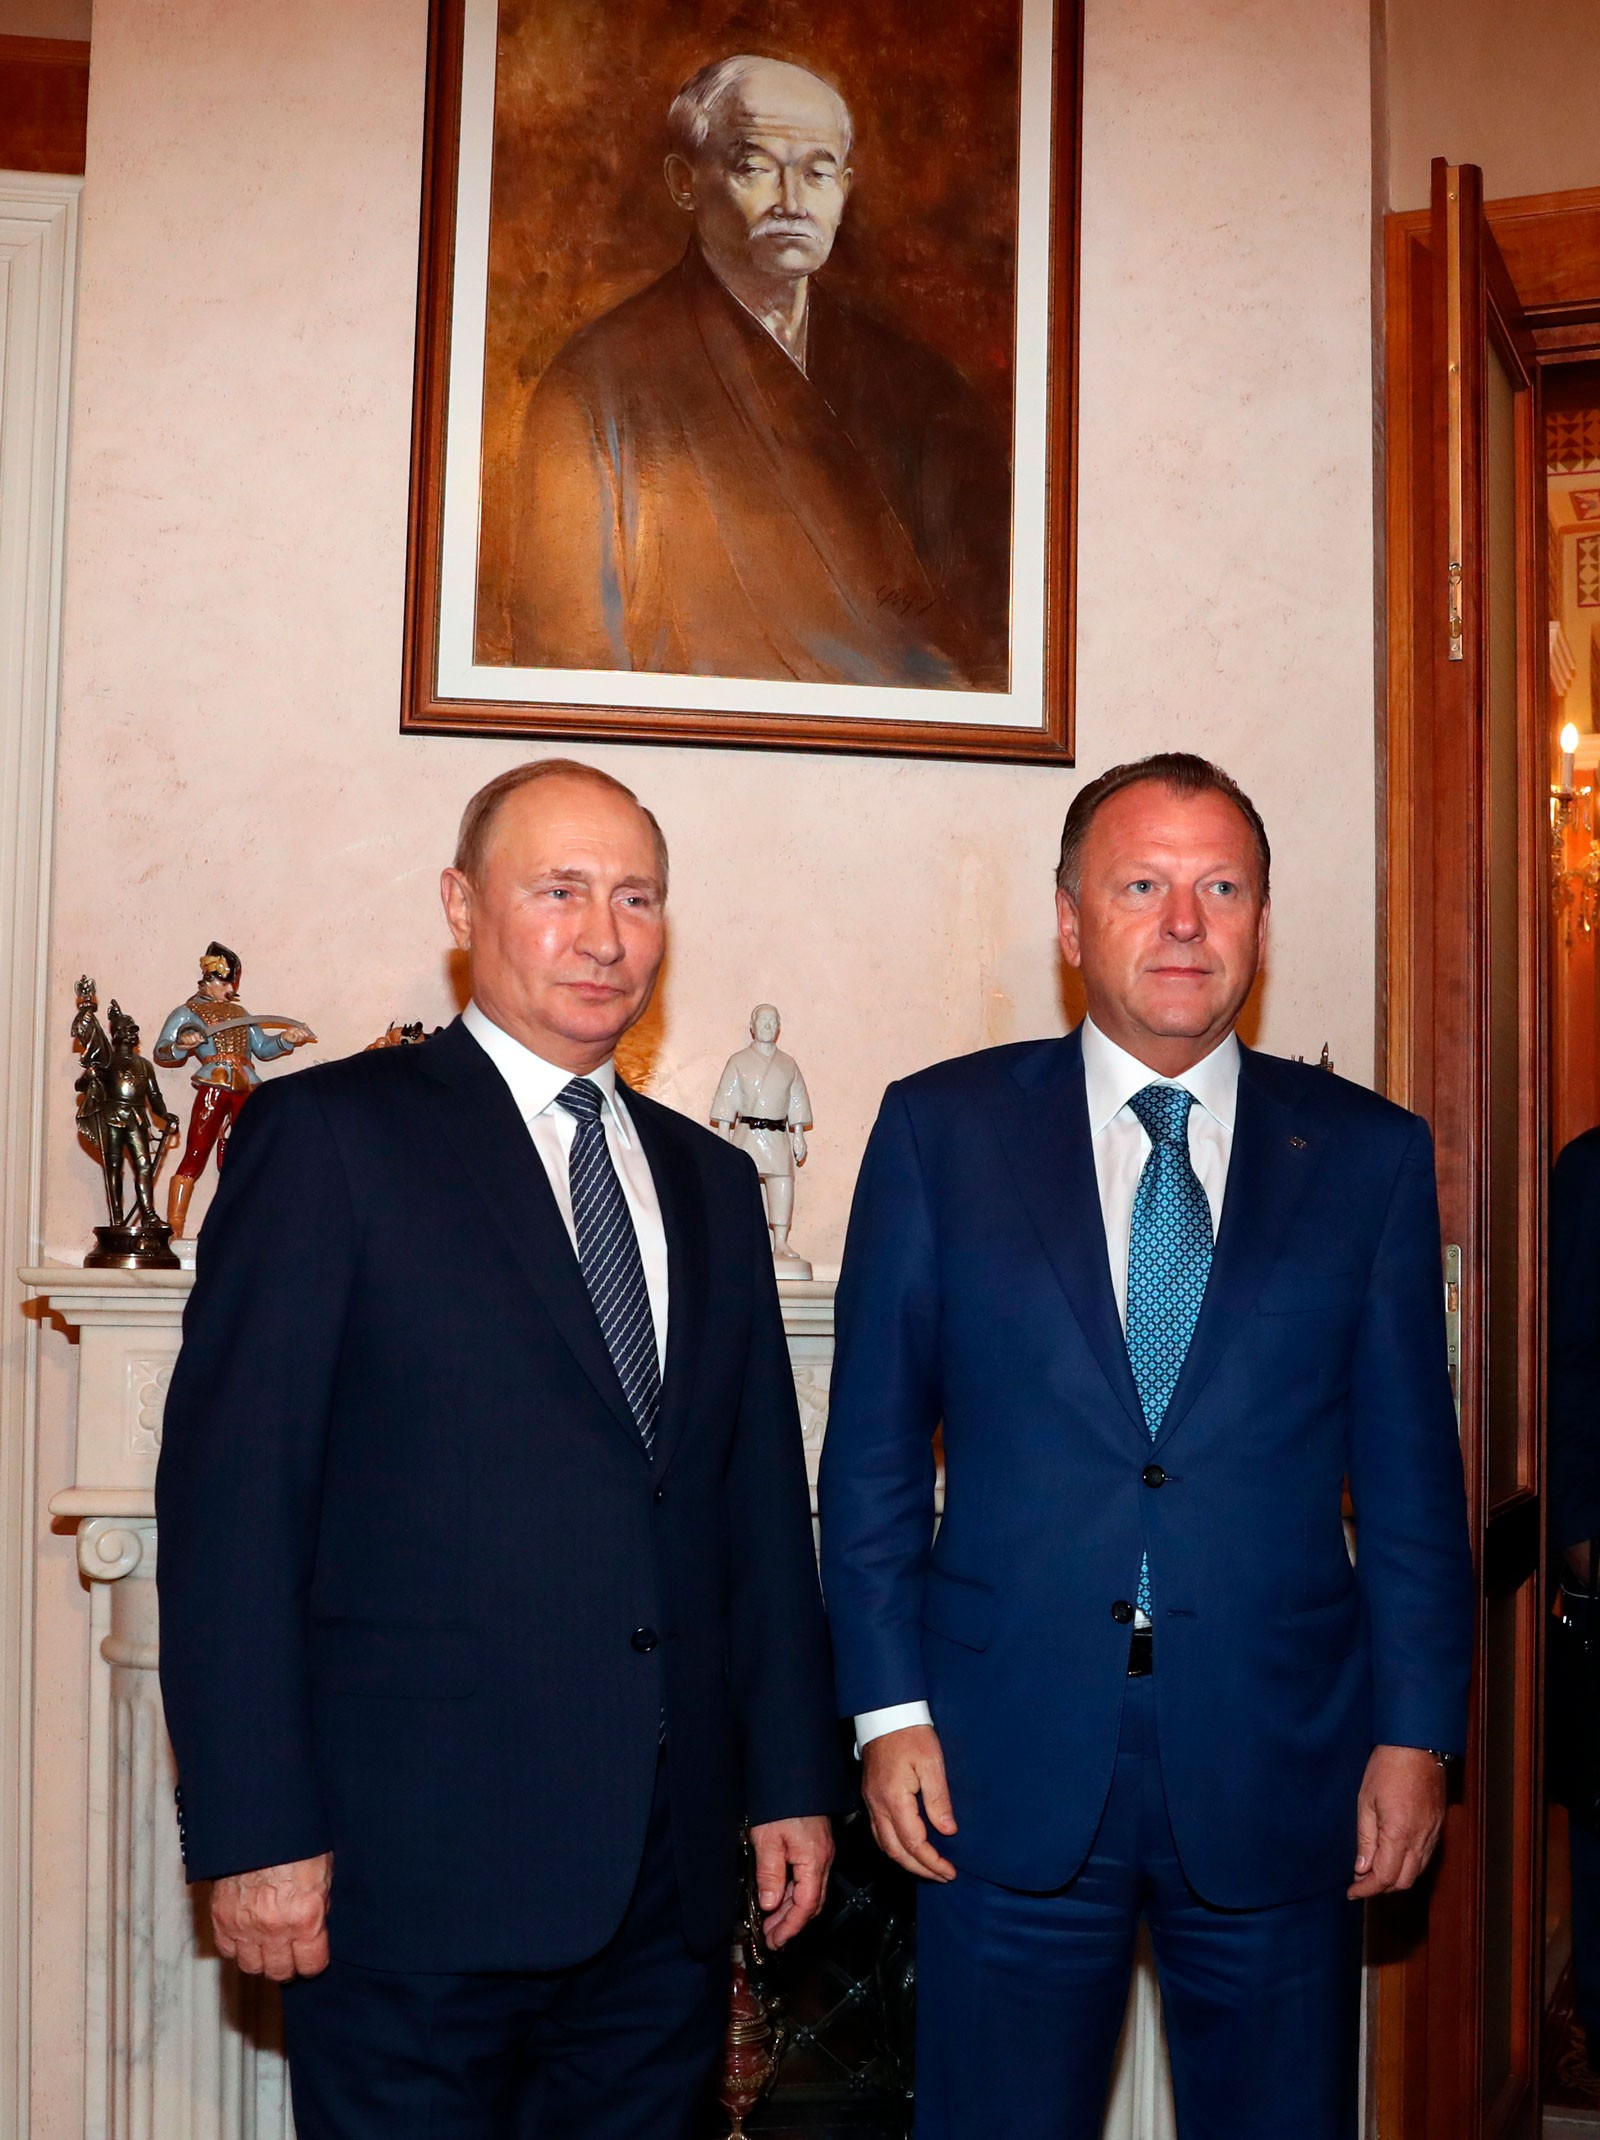 President Putin Visited Ijf President Vizer In Budapest Judo Headquarters Ijf Org